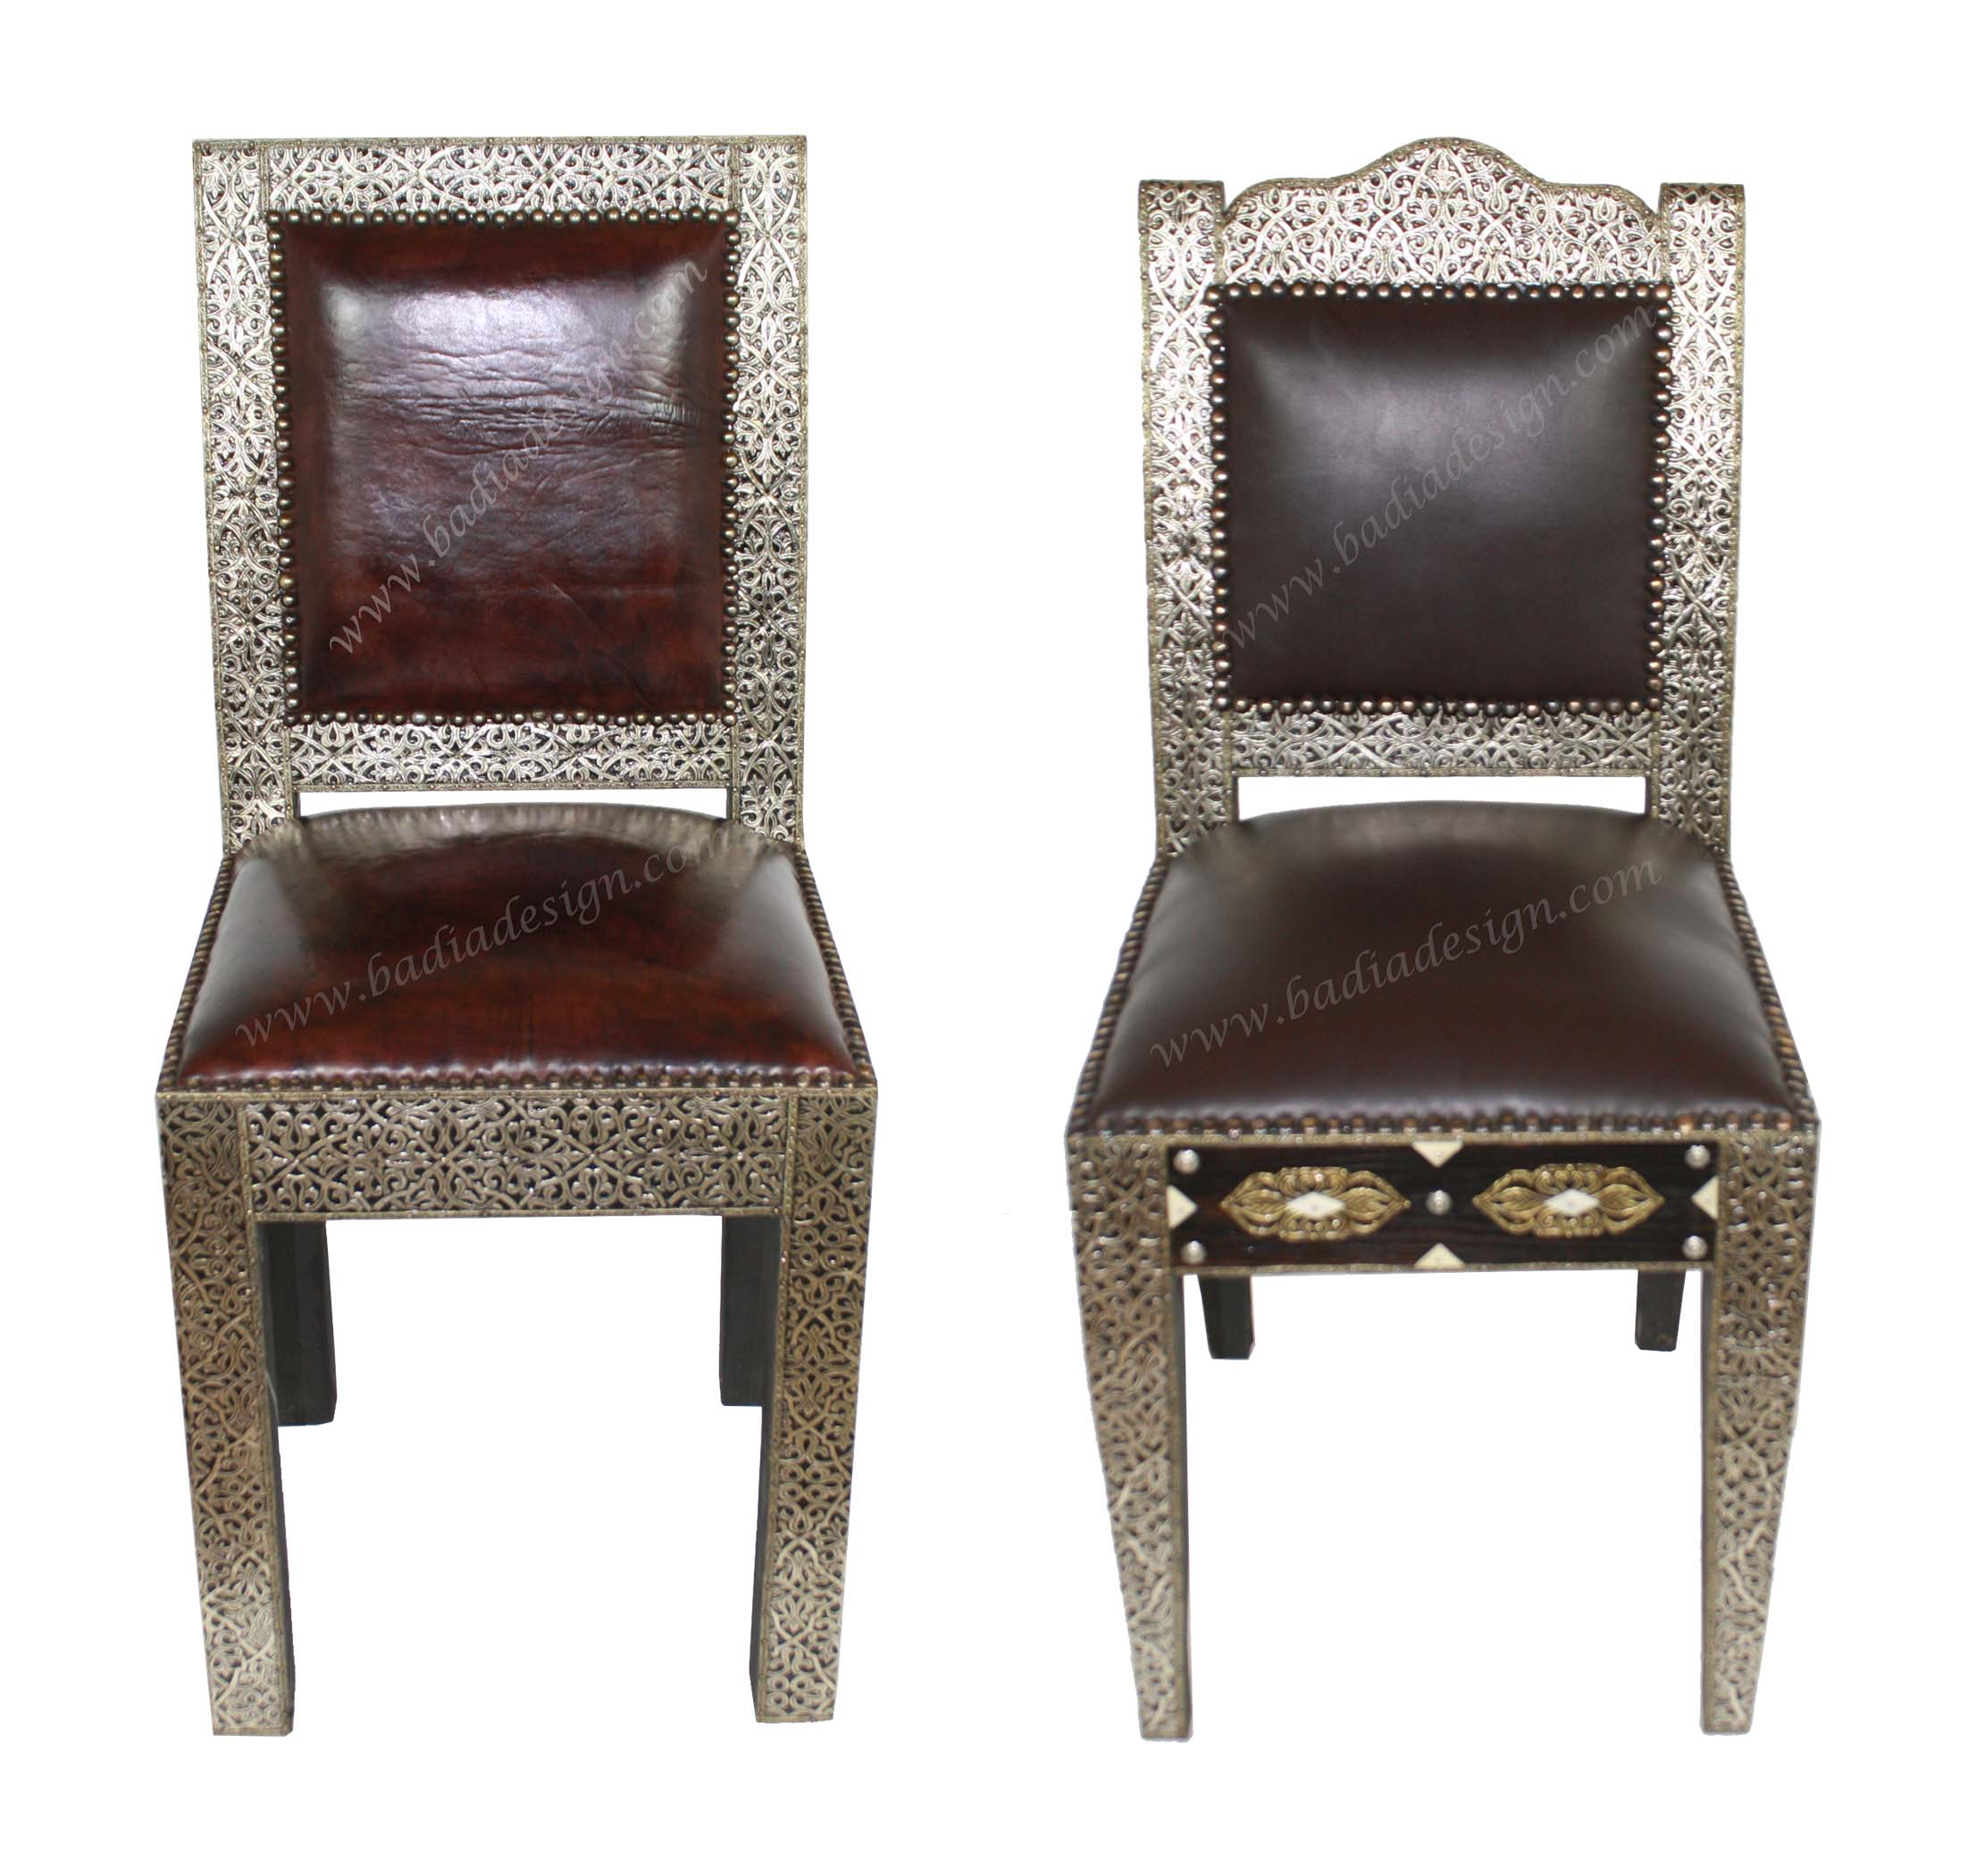 moroccan-metal-and-leather-chair-ml-ch016.jpg